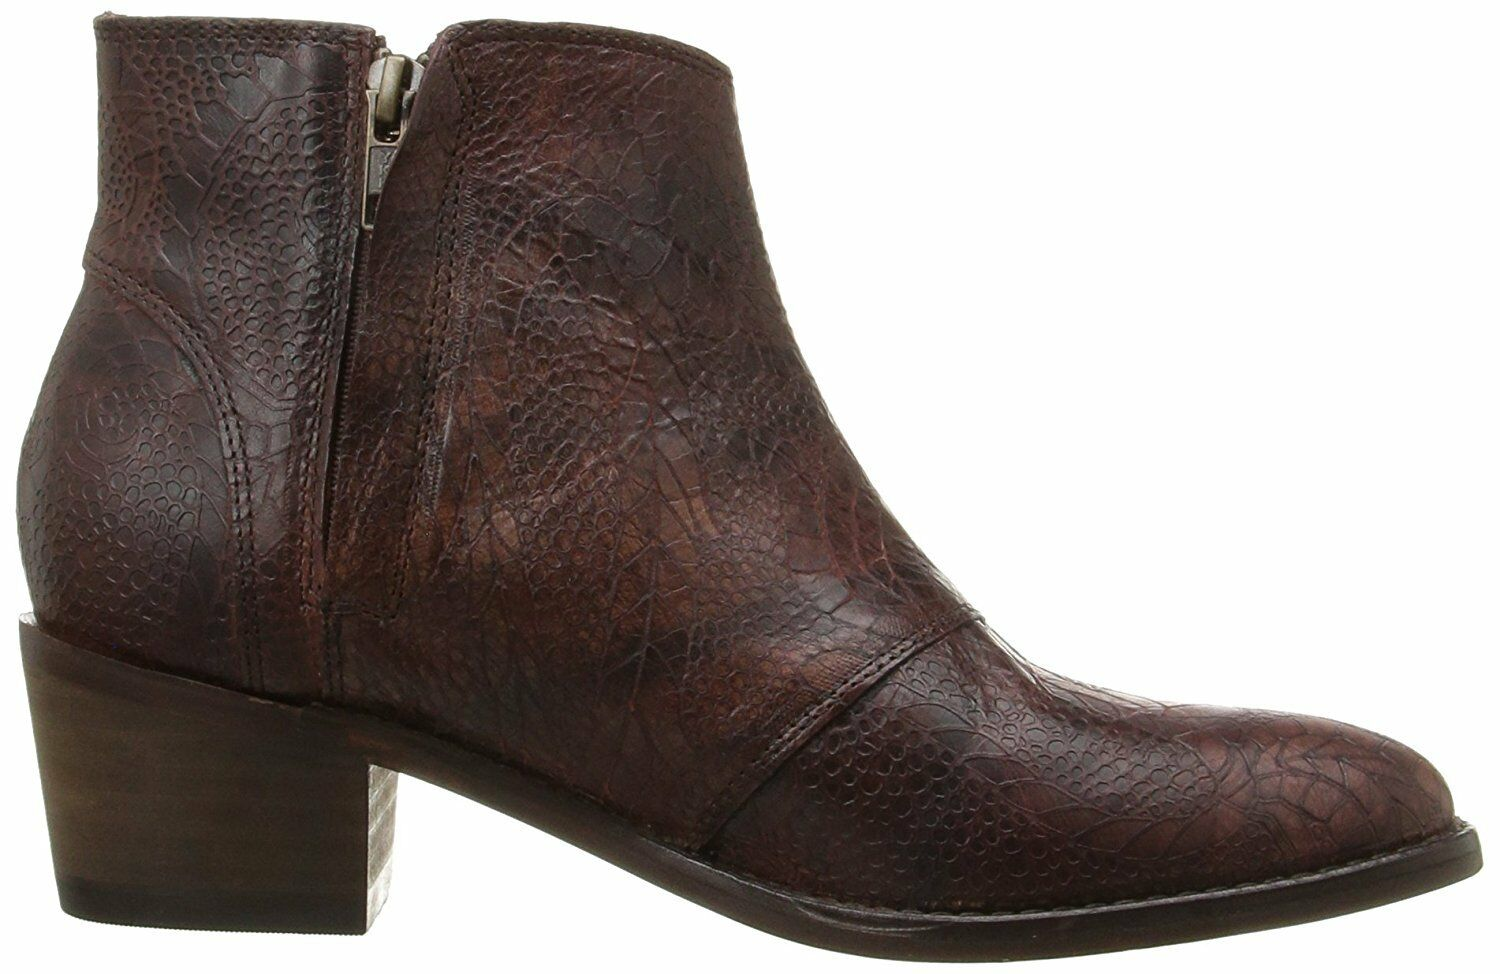 Wolverine Roxana Womens Leather Ankle Boots, Brown Floral, US 8, Runs small